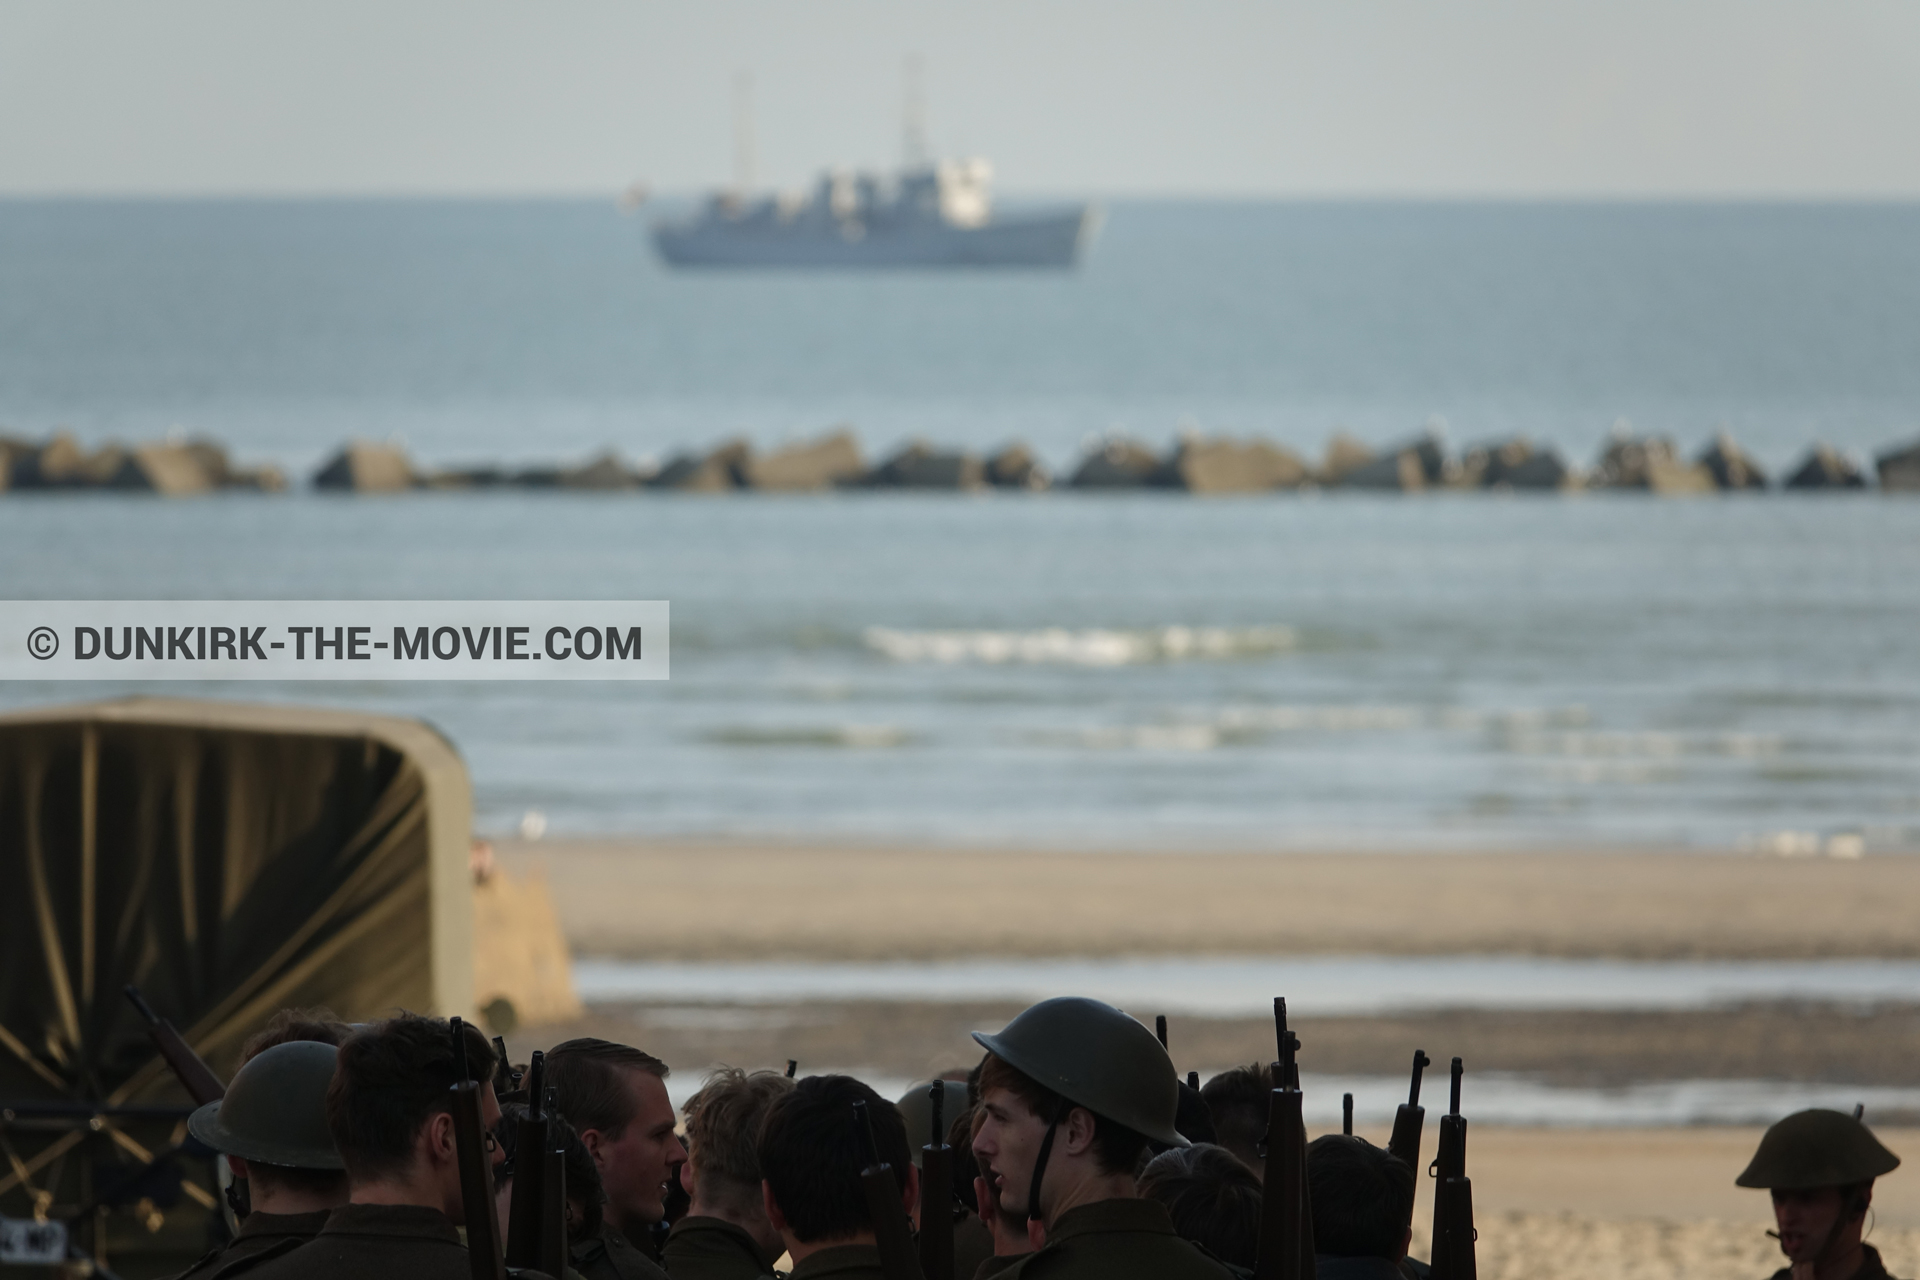 Picture with boat, truck, supernumeraries, H11 - MLV Castor, beach,  from behind the scene of the Dunkirk movie by Nolan